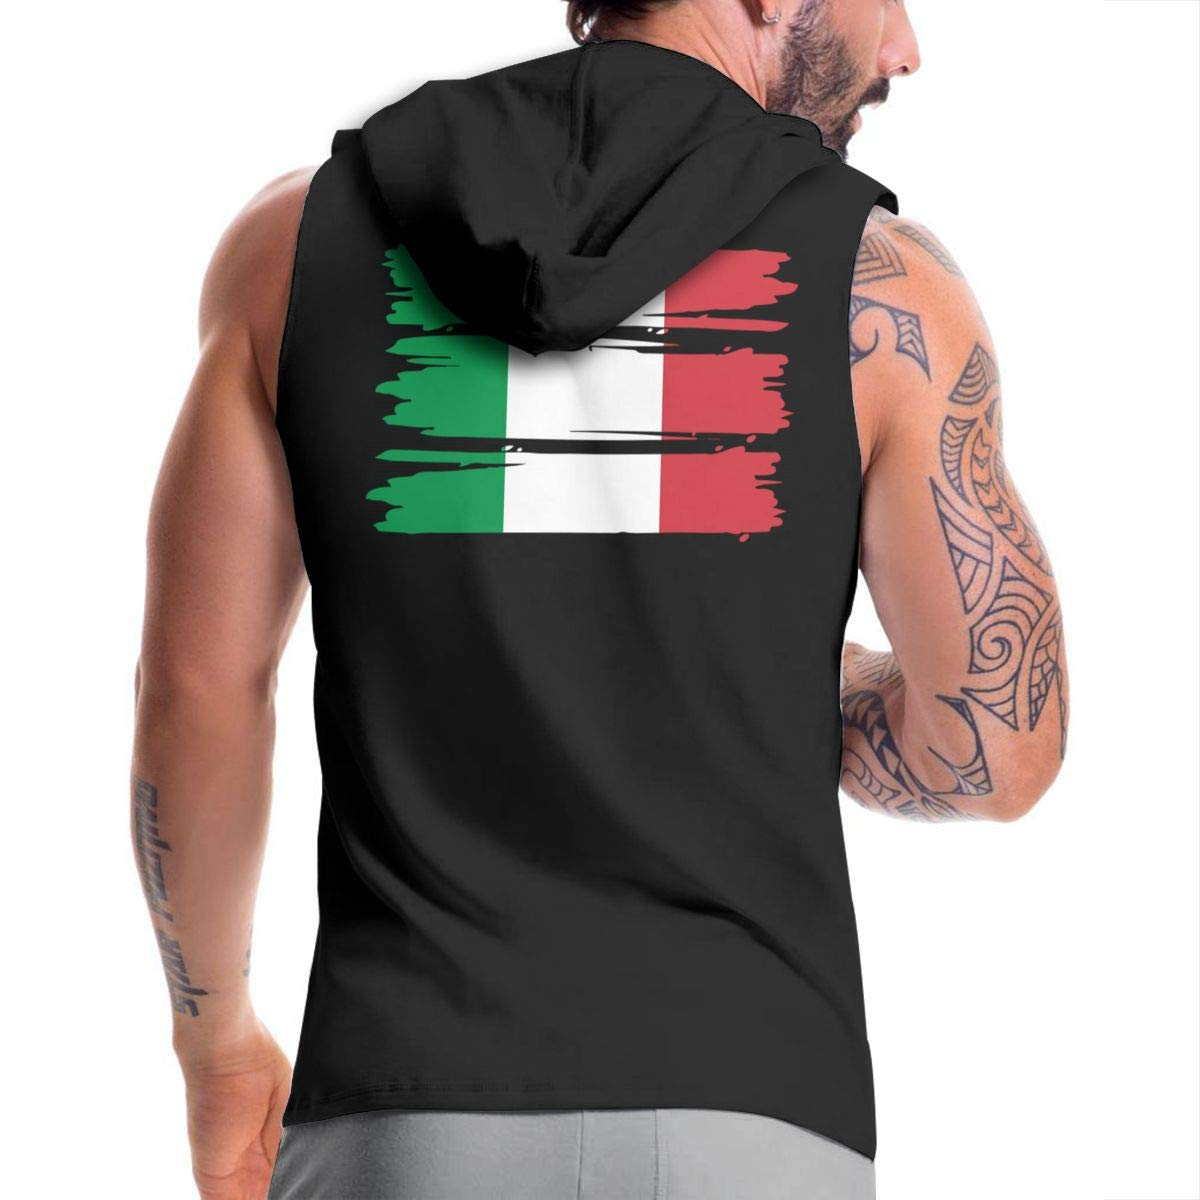 Italian Flag Zip Up Vest BMWEITIHBQ Mens Sleeveless Sweatshirt